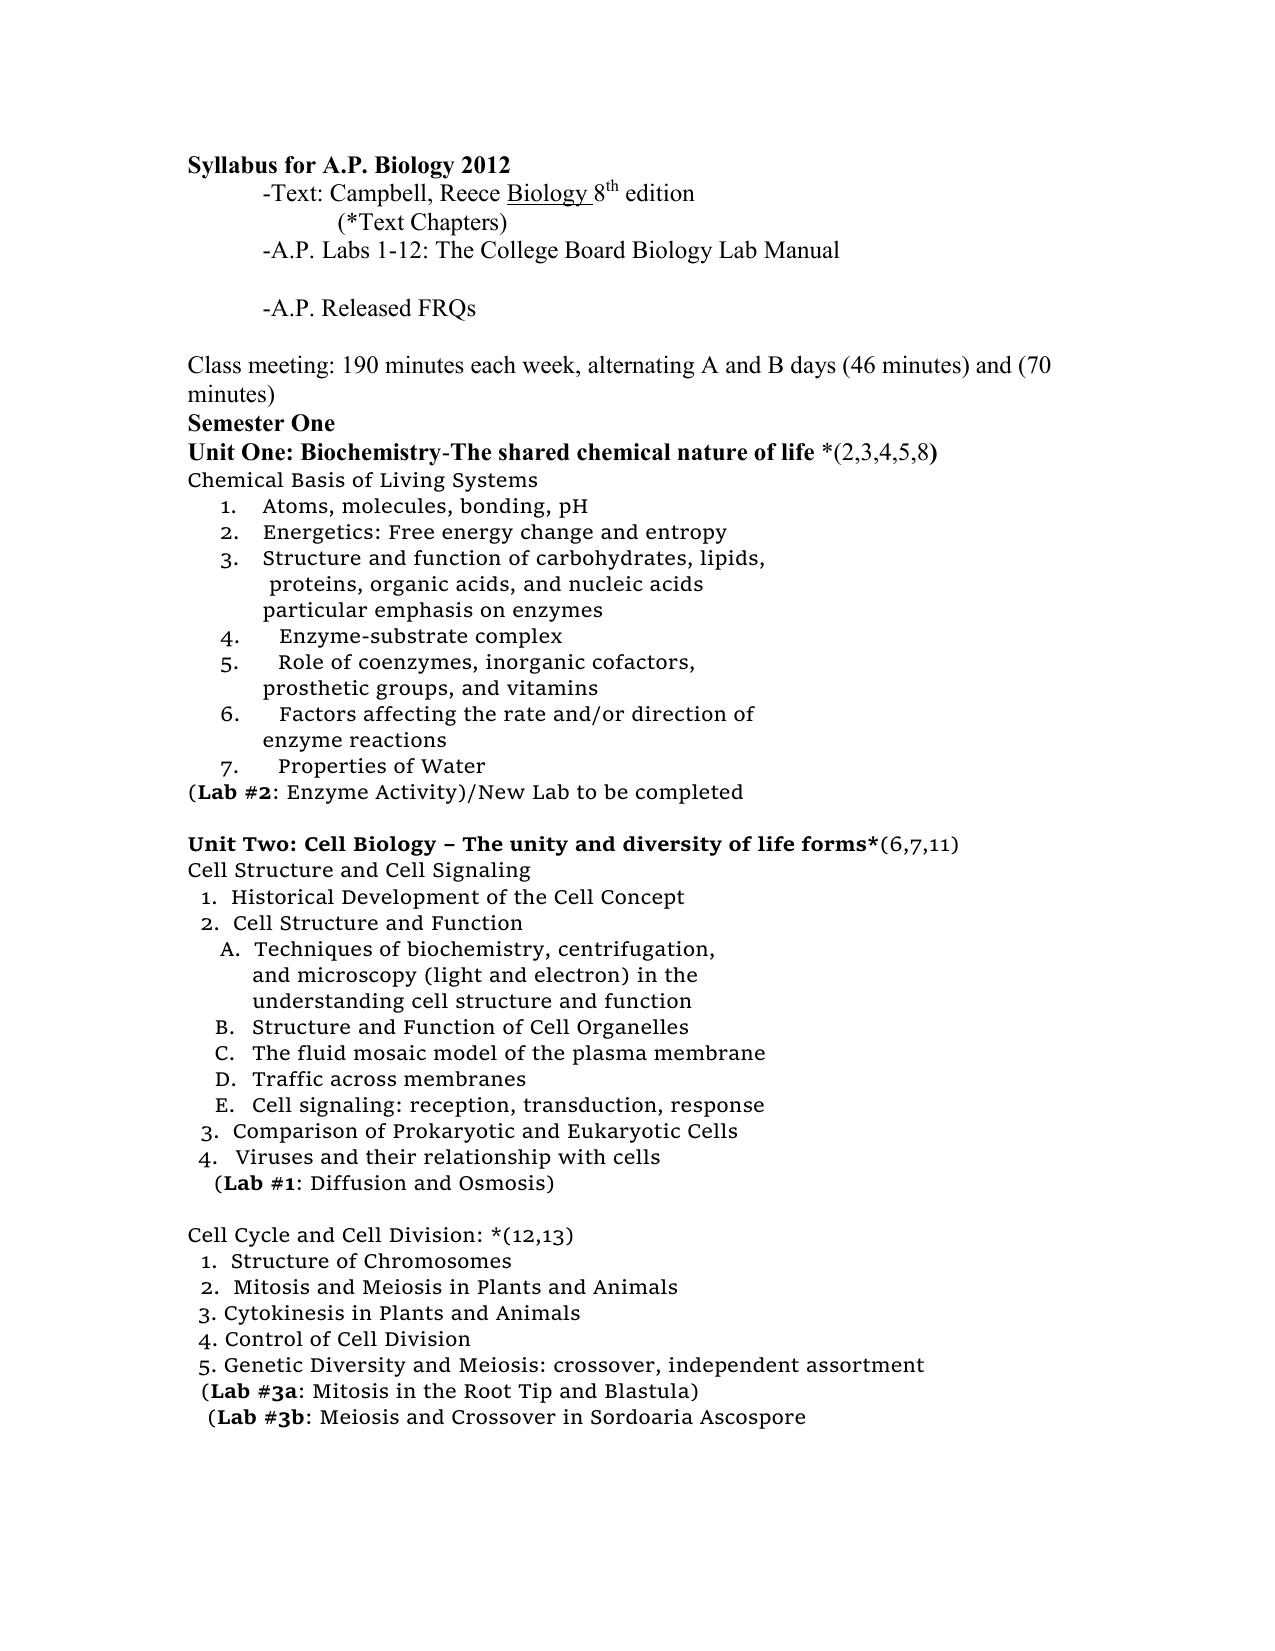 Syllabus for ap biology 2012 text campbell reece biology 8 syllabus for ap biology 2012 text campbell reece biology 8 edition text chapters fandeluxe Gallery